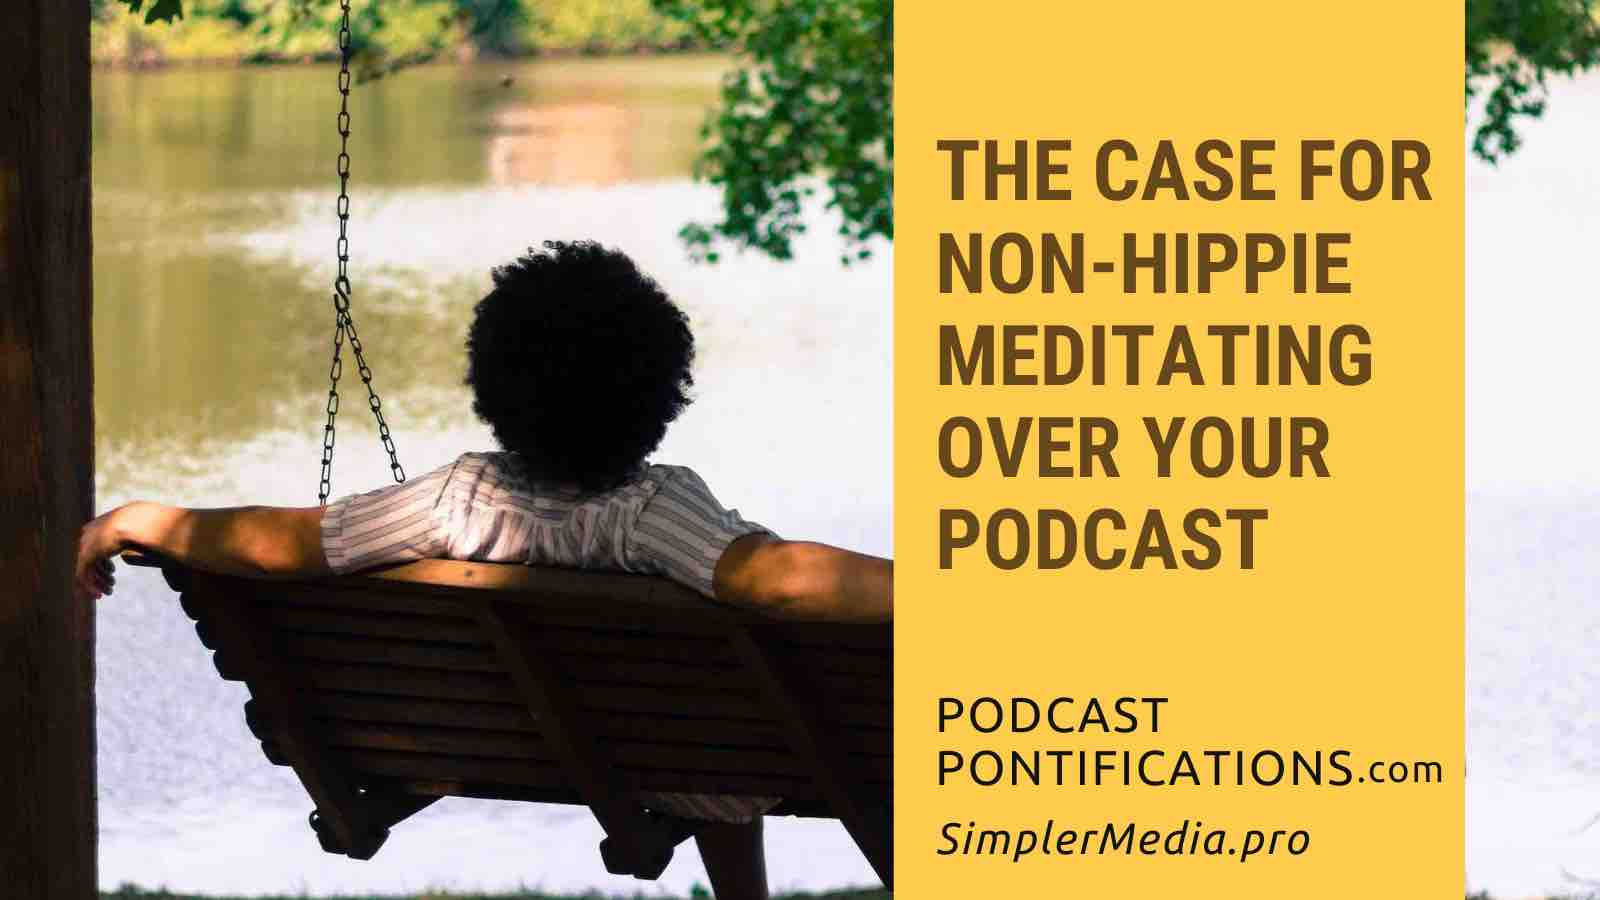 The Case For Non-Hippie Meditating Over Your Podcast